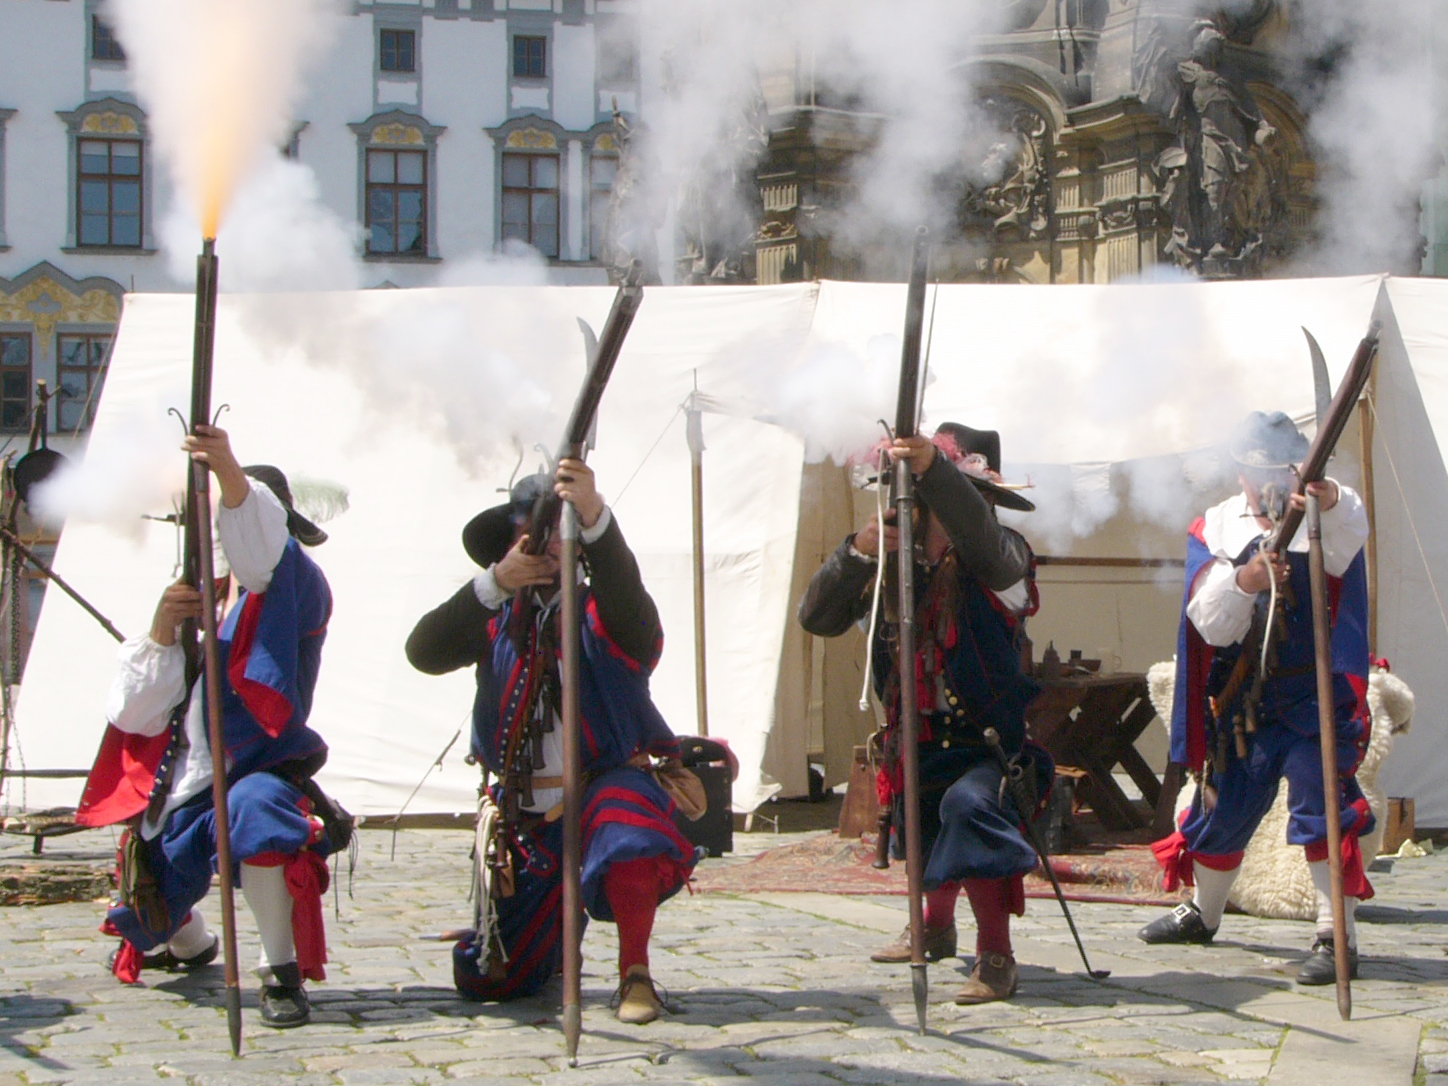 Musketeers firing muskets in a historical reenactment from the Thirty Years' War.